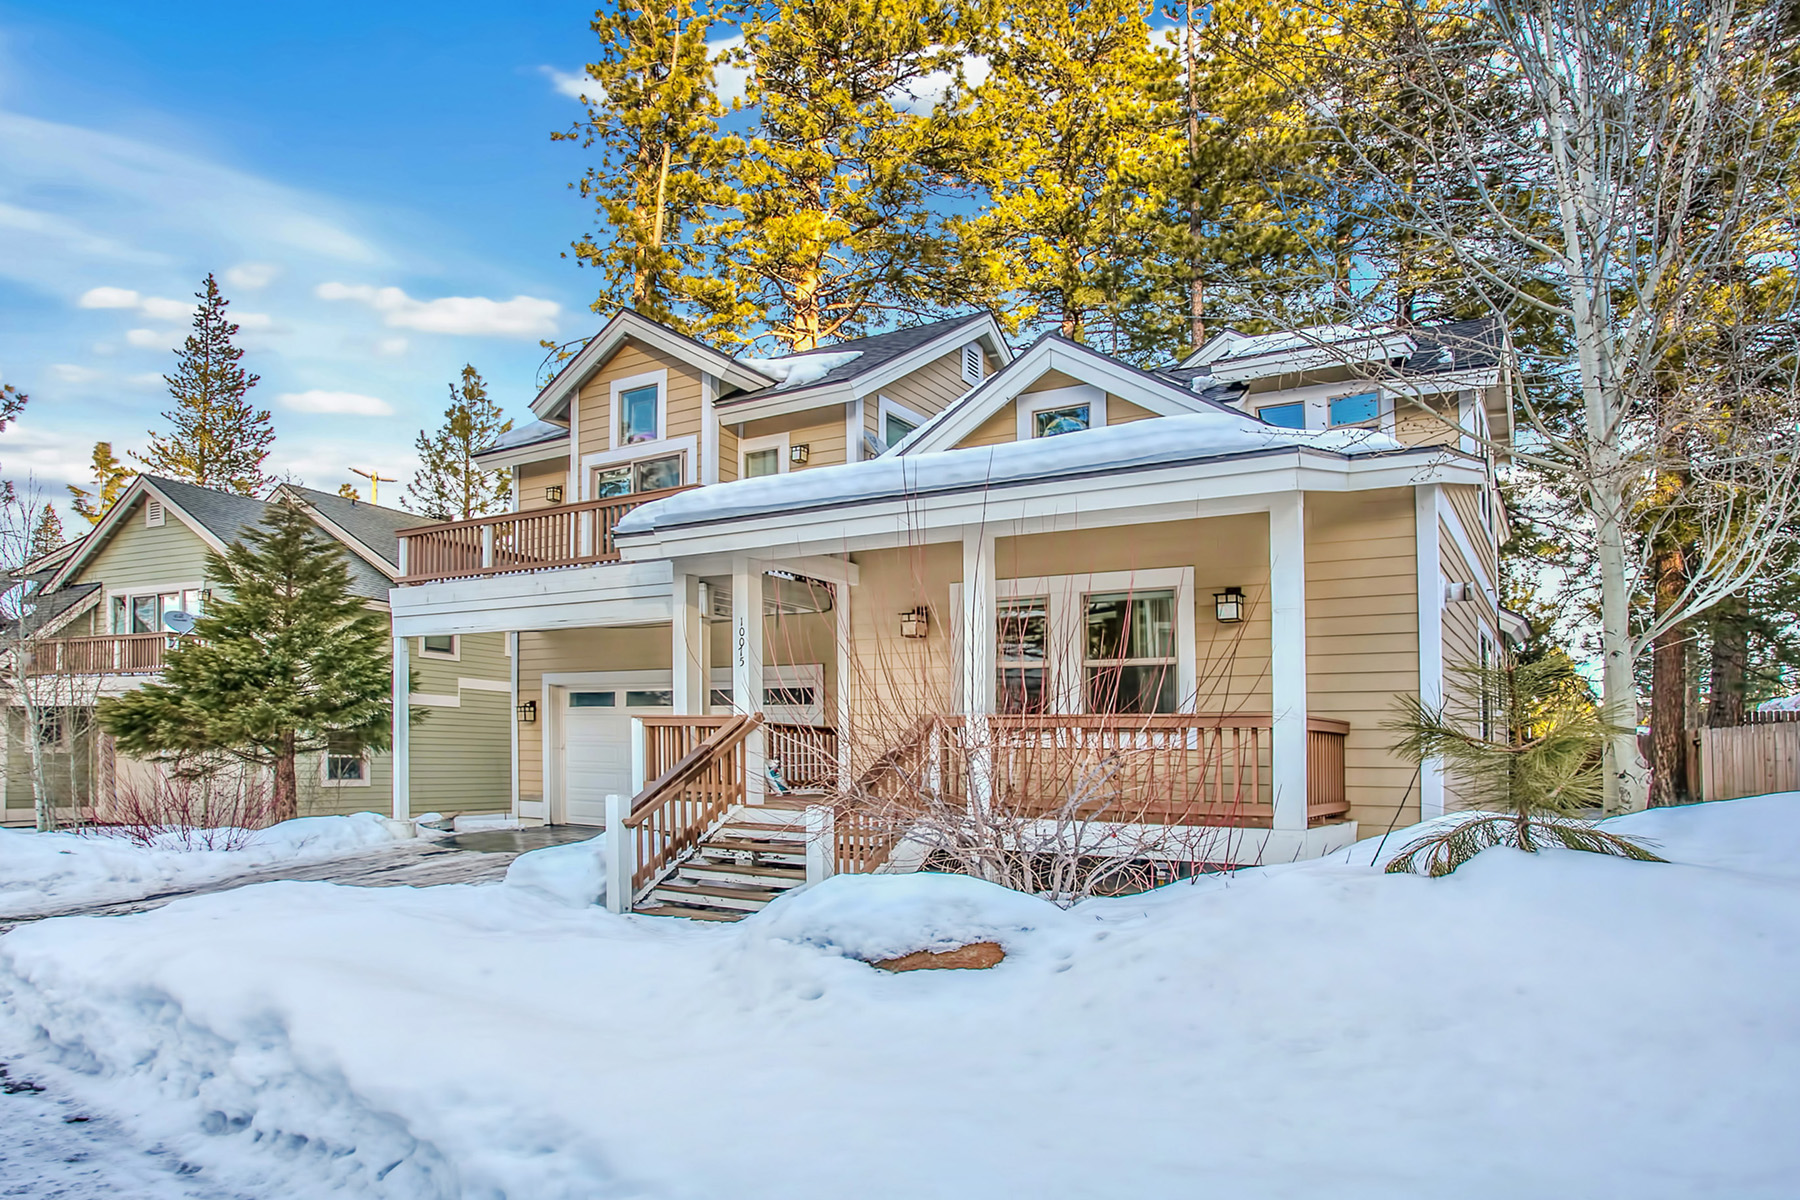 Single Family Home for Active at 10075 Winter Creek Loop Truckee, California 96161 United States